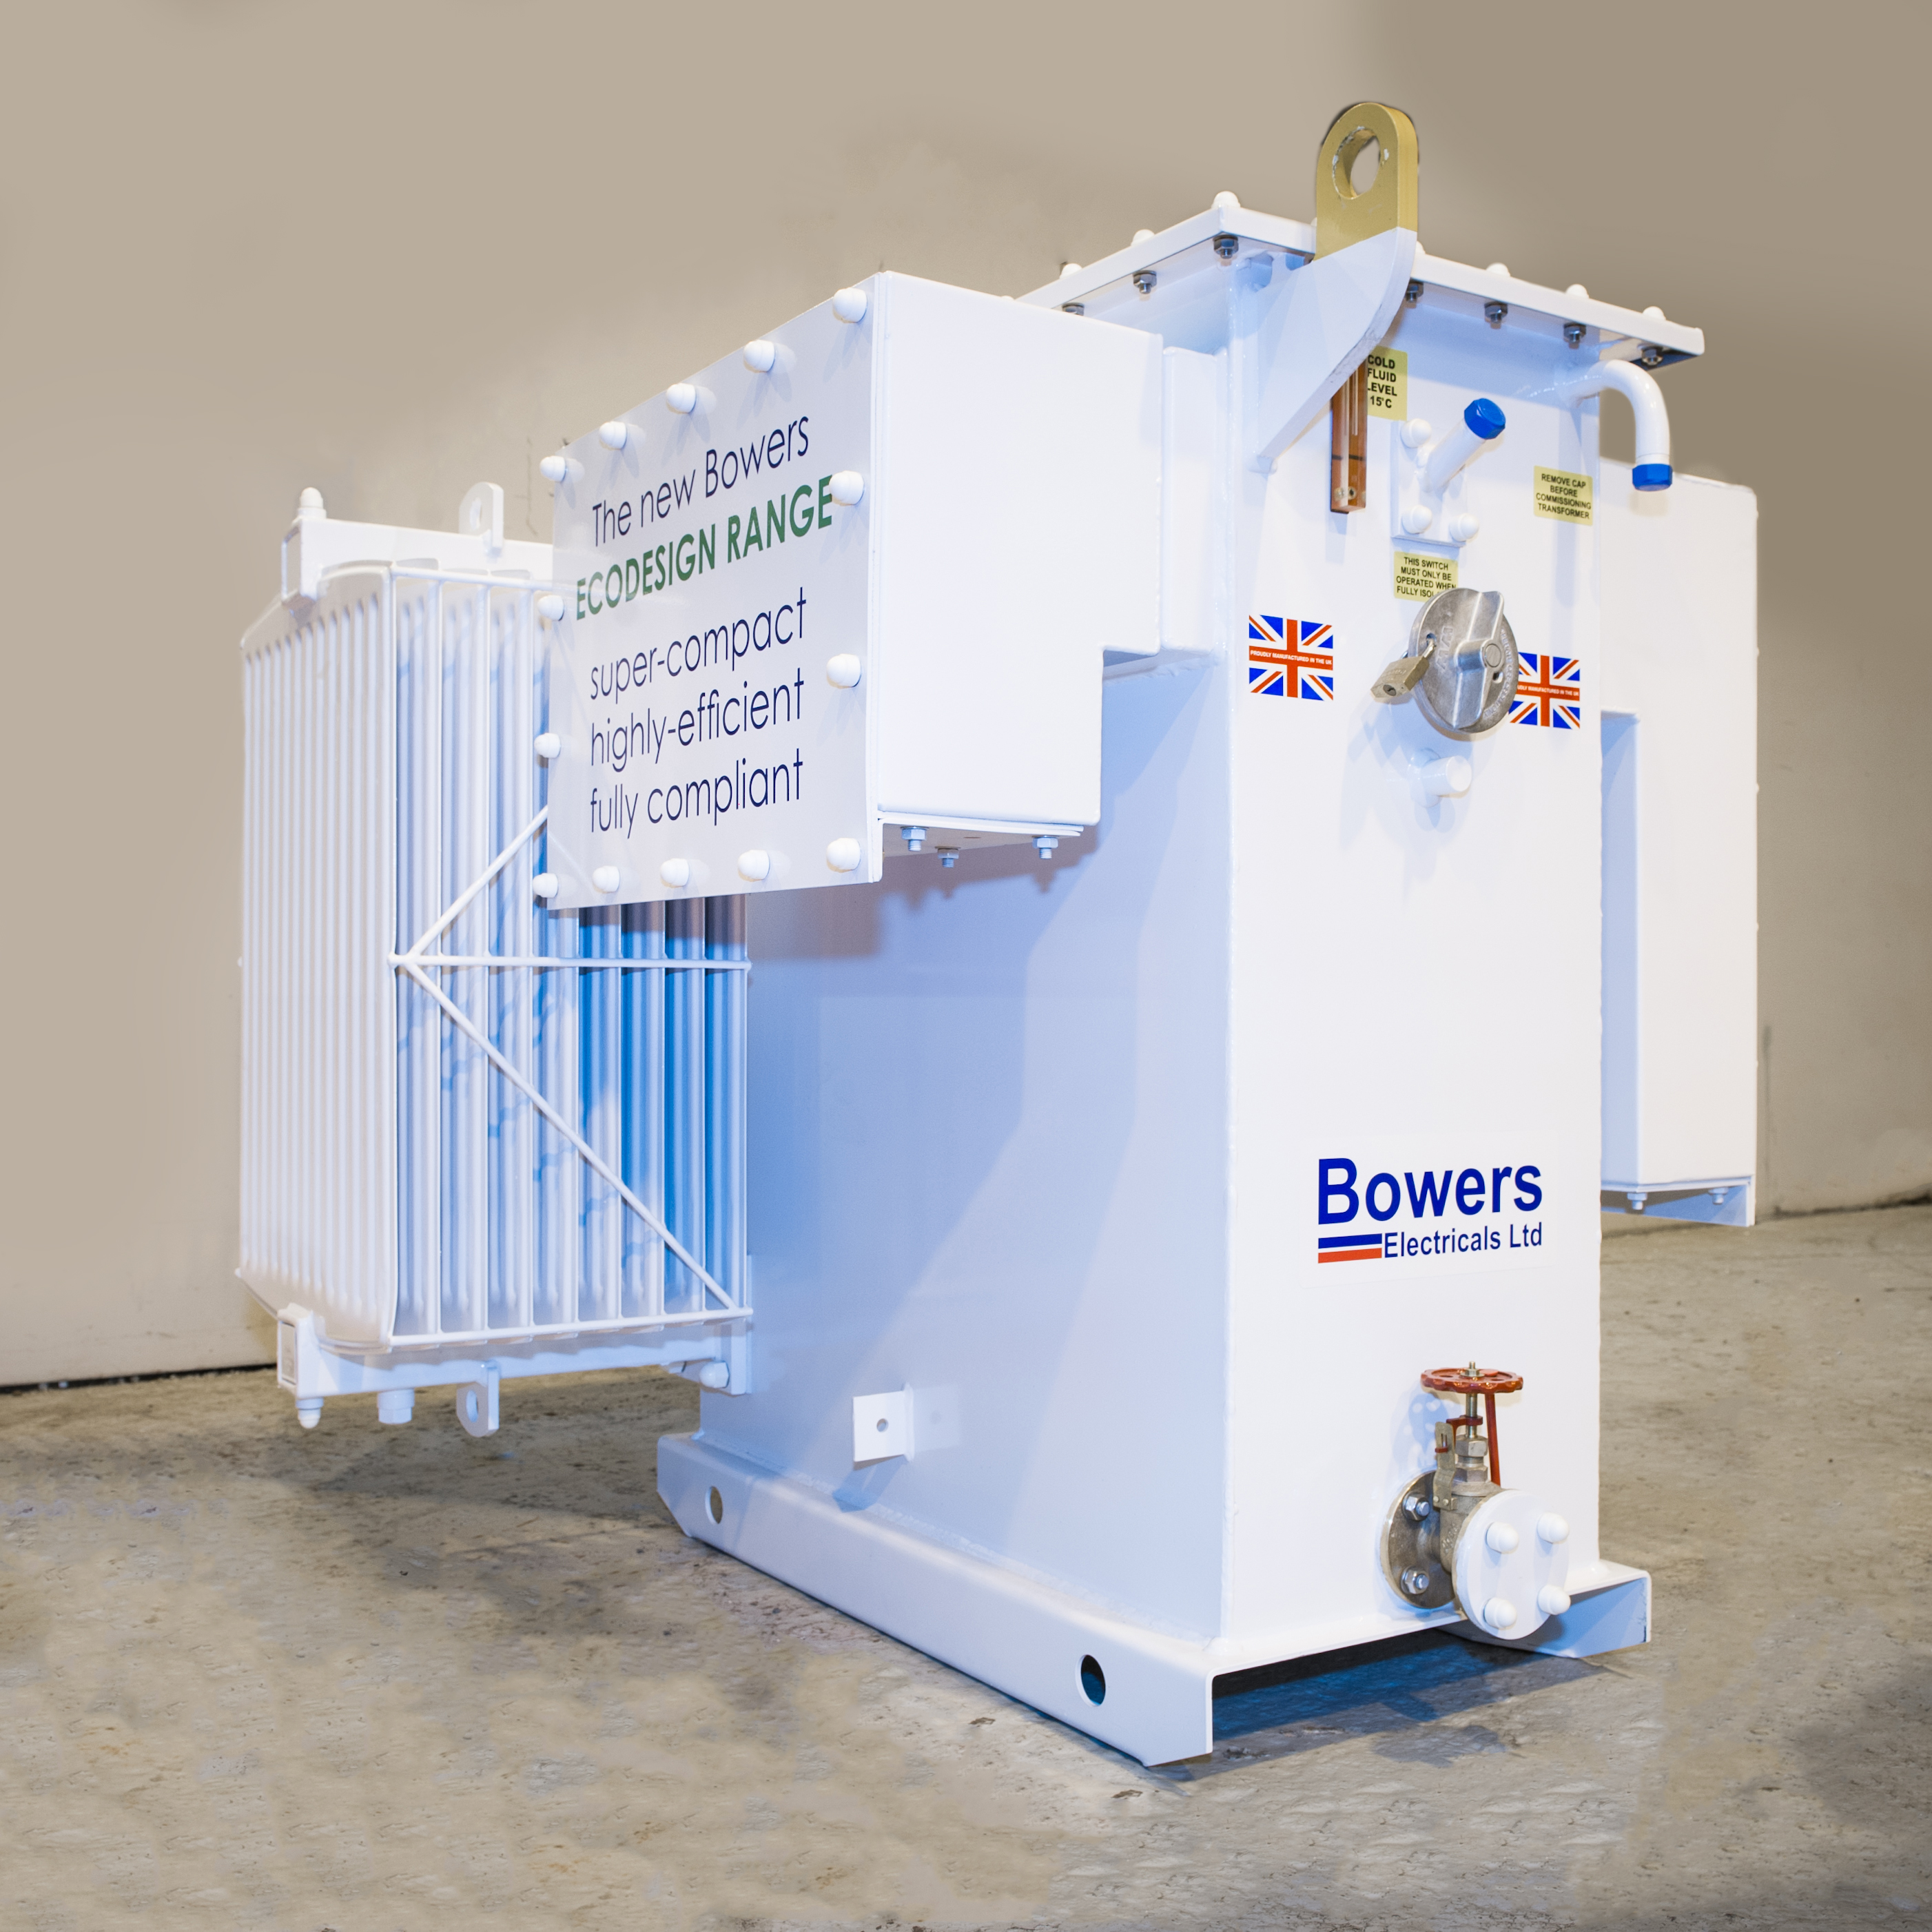 Our Bowers ecodesign transformer in white.